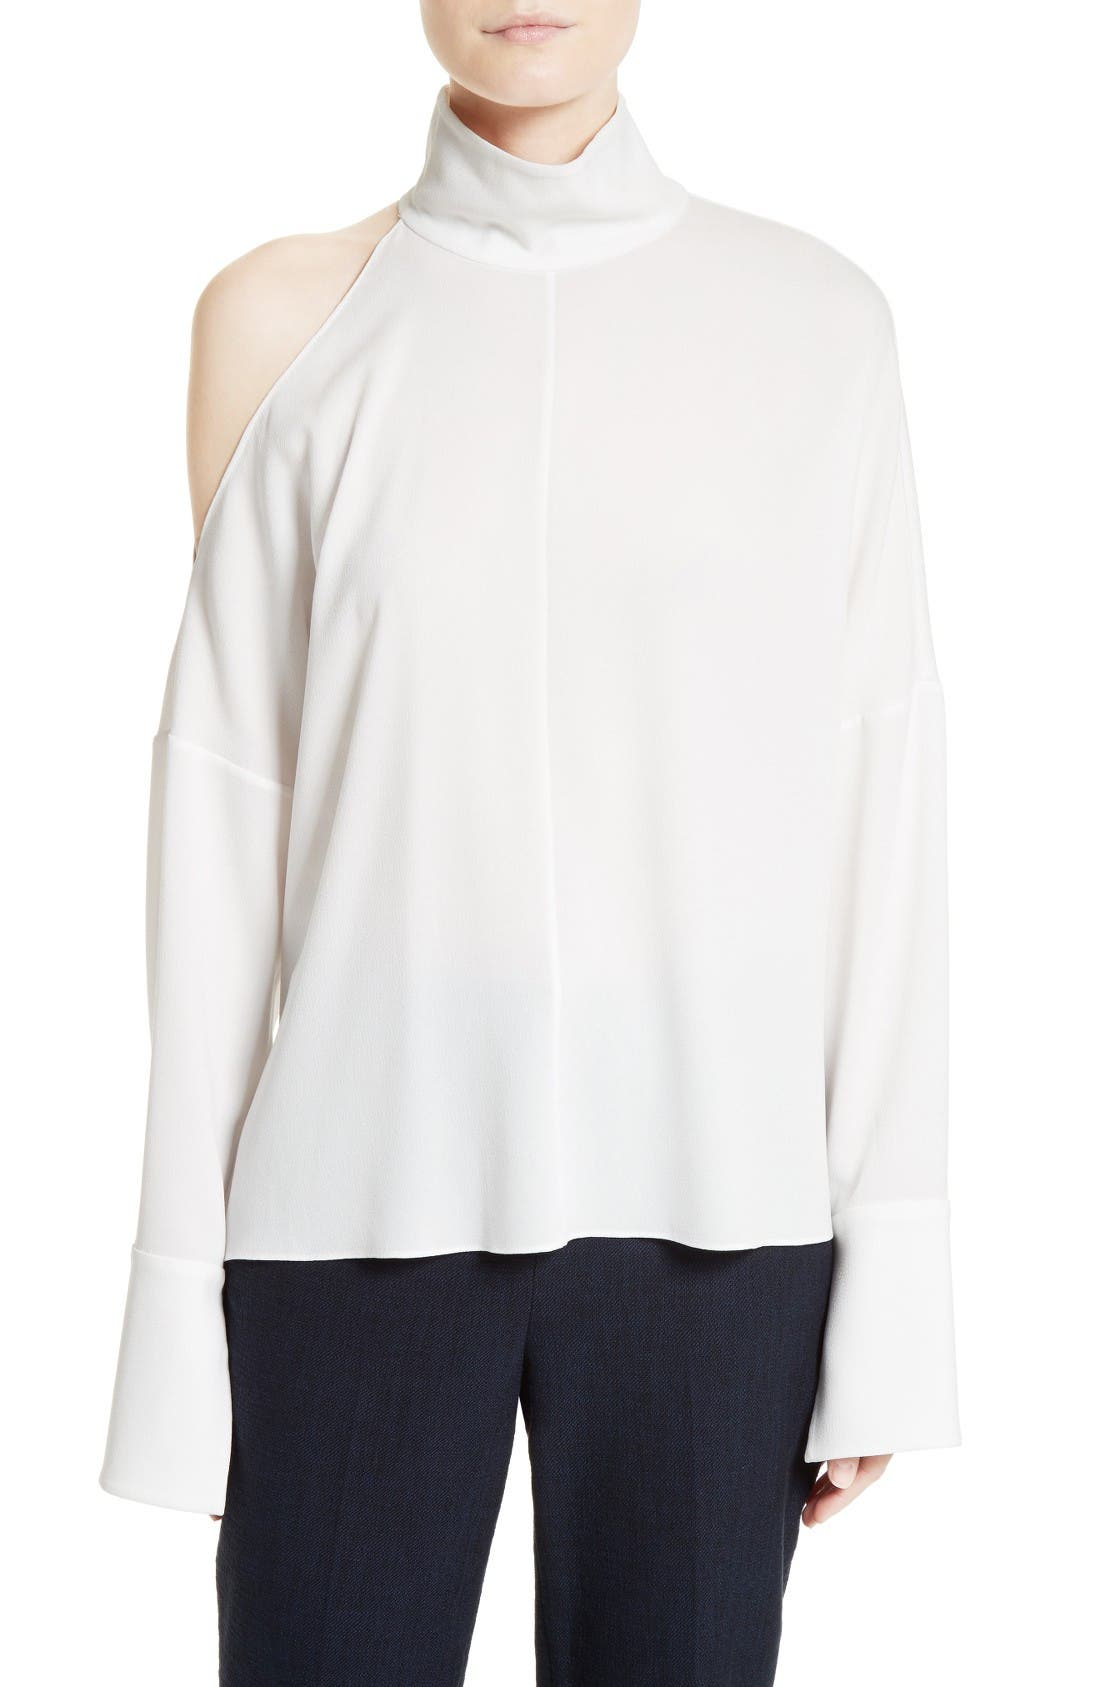 Main Image - Tibi Asymmetrical Shoulder Cutout Top